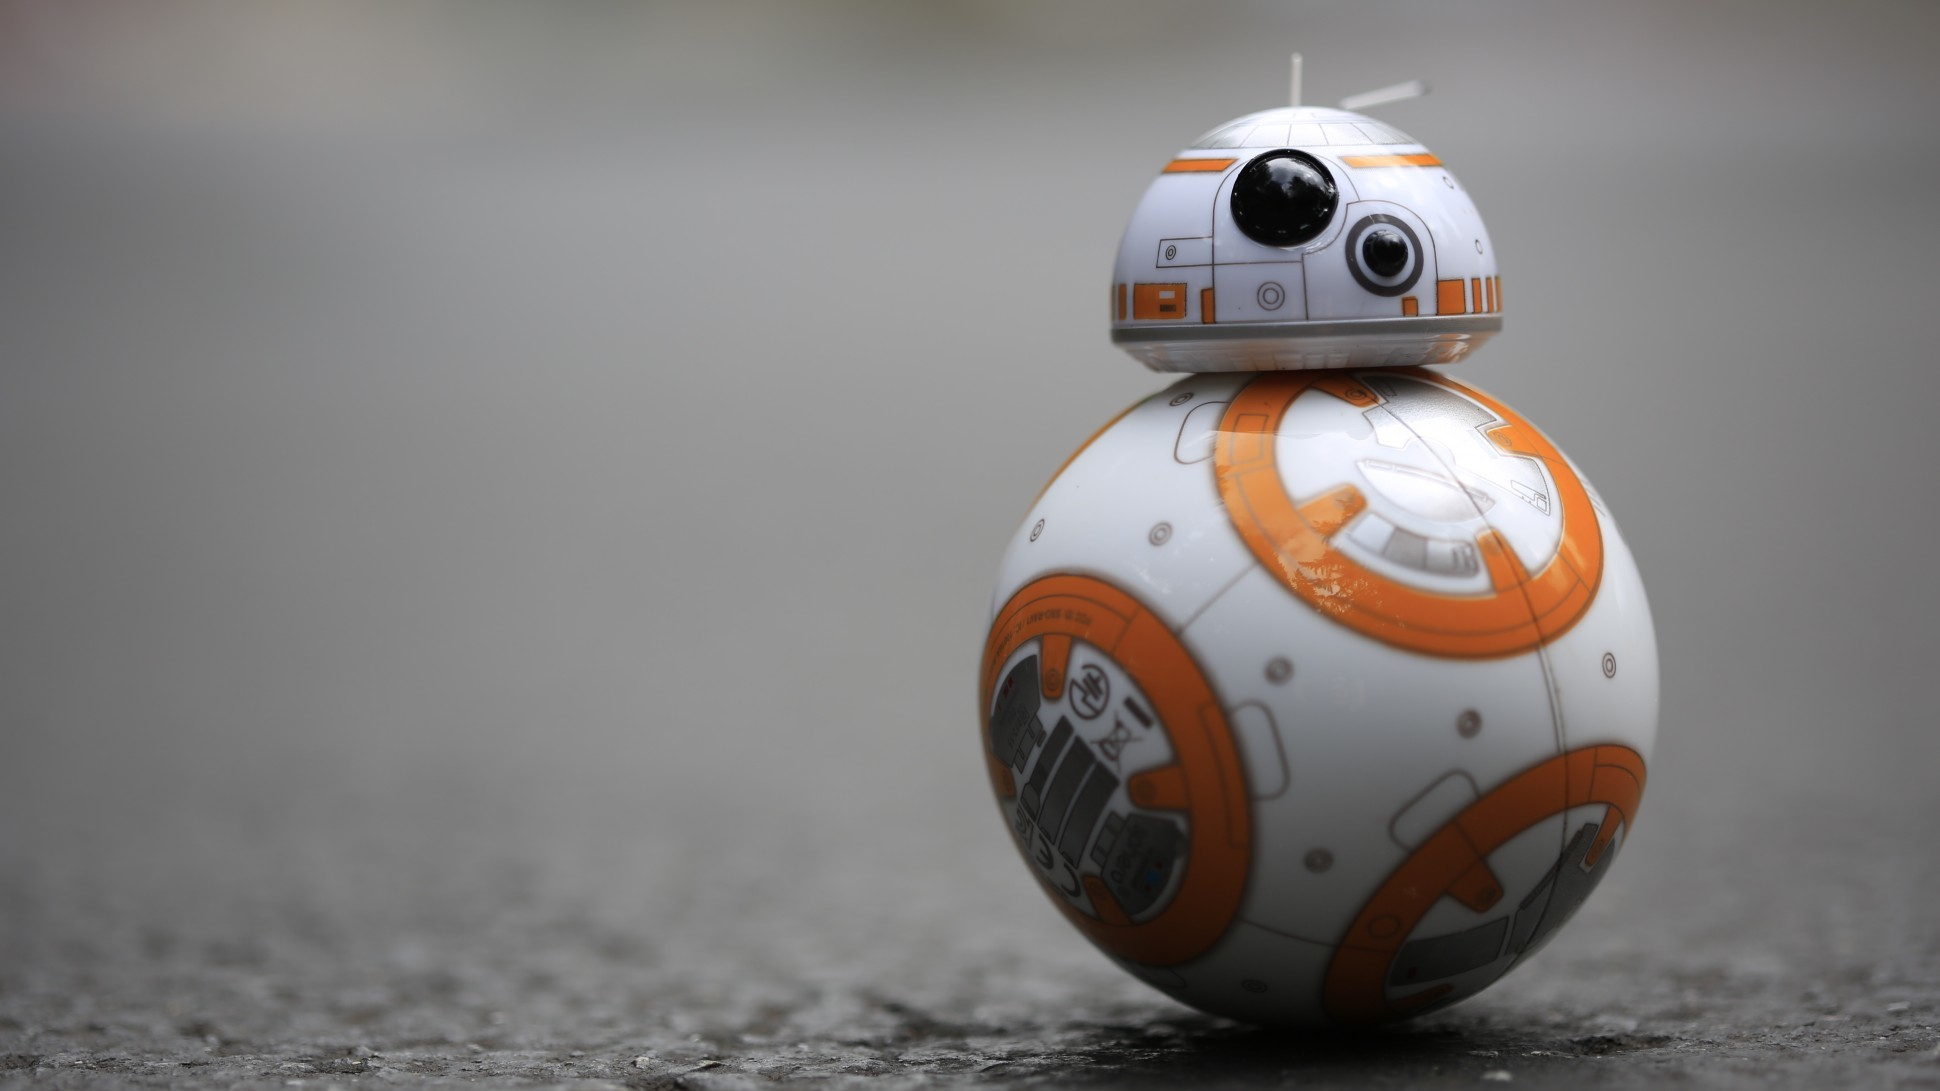 Star Wars BB 8 Droid Wallpapers – HD Wallpapers Backgrounds of Your .